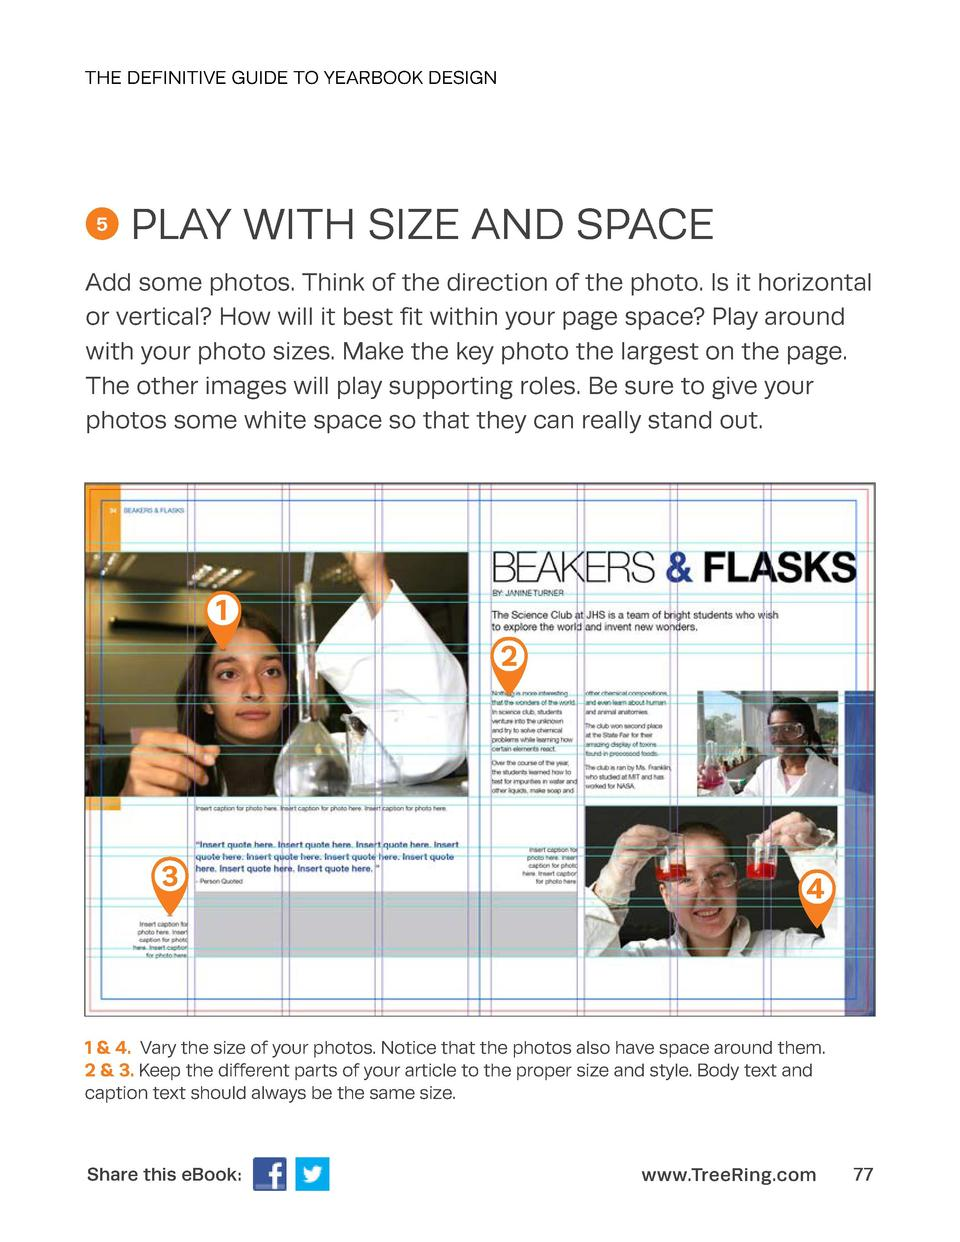 THE DEFINITIVE GUIDE TO YEARBOOK DESIGN  5  PLAY WITH SIZE AND SPACE  Add some photos. Think of the direction of the photo...